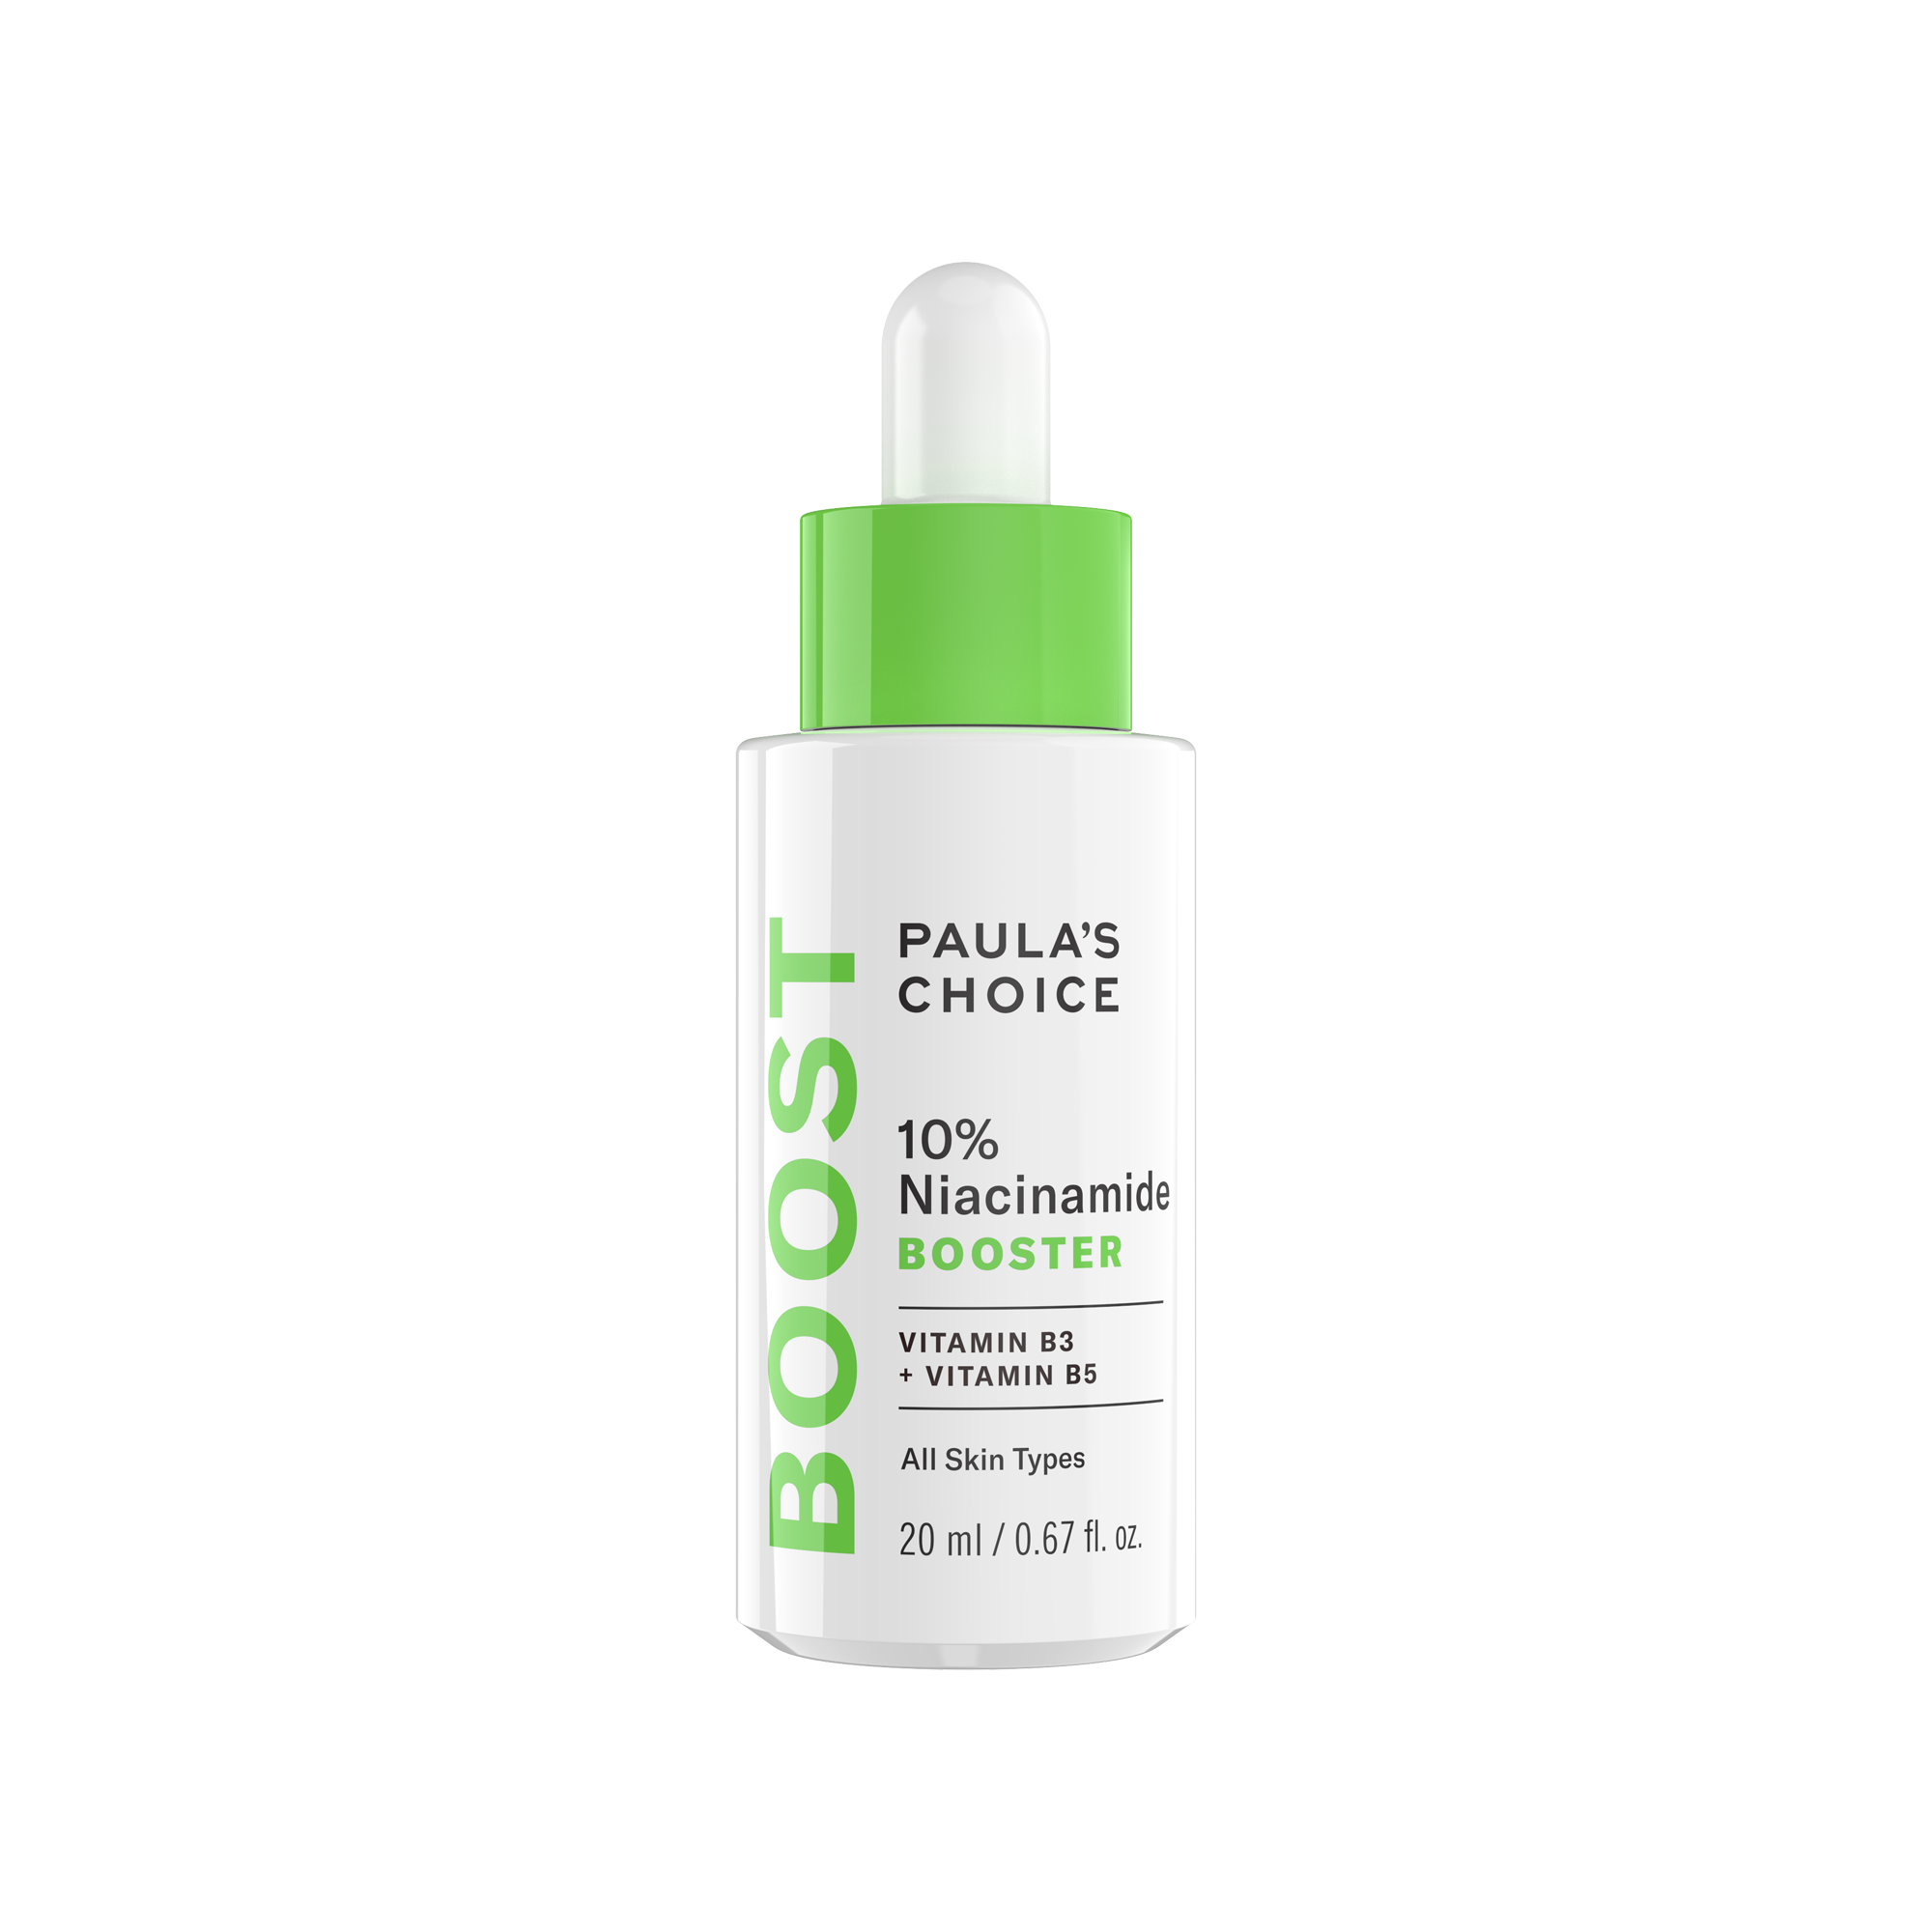 http://www.paulaschoice.com/on/demandware.static/-/Sites-pc-catalog/en_US/dw10f61ac3/images/products/resist-10-percent-niacinamide-booster-7980-L.png